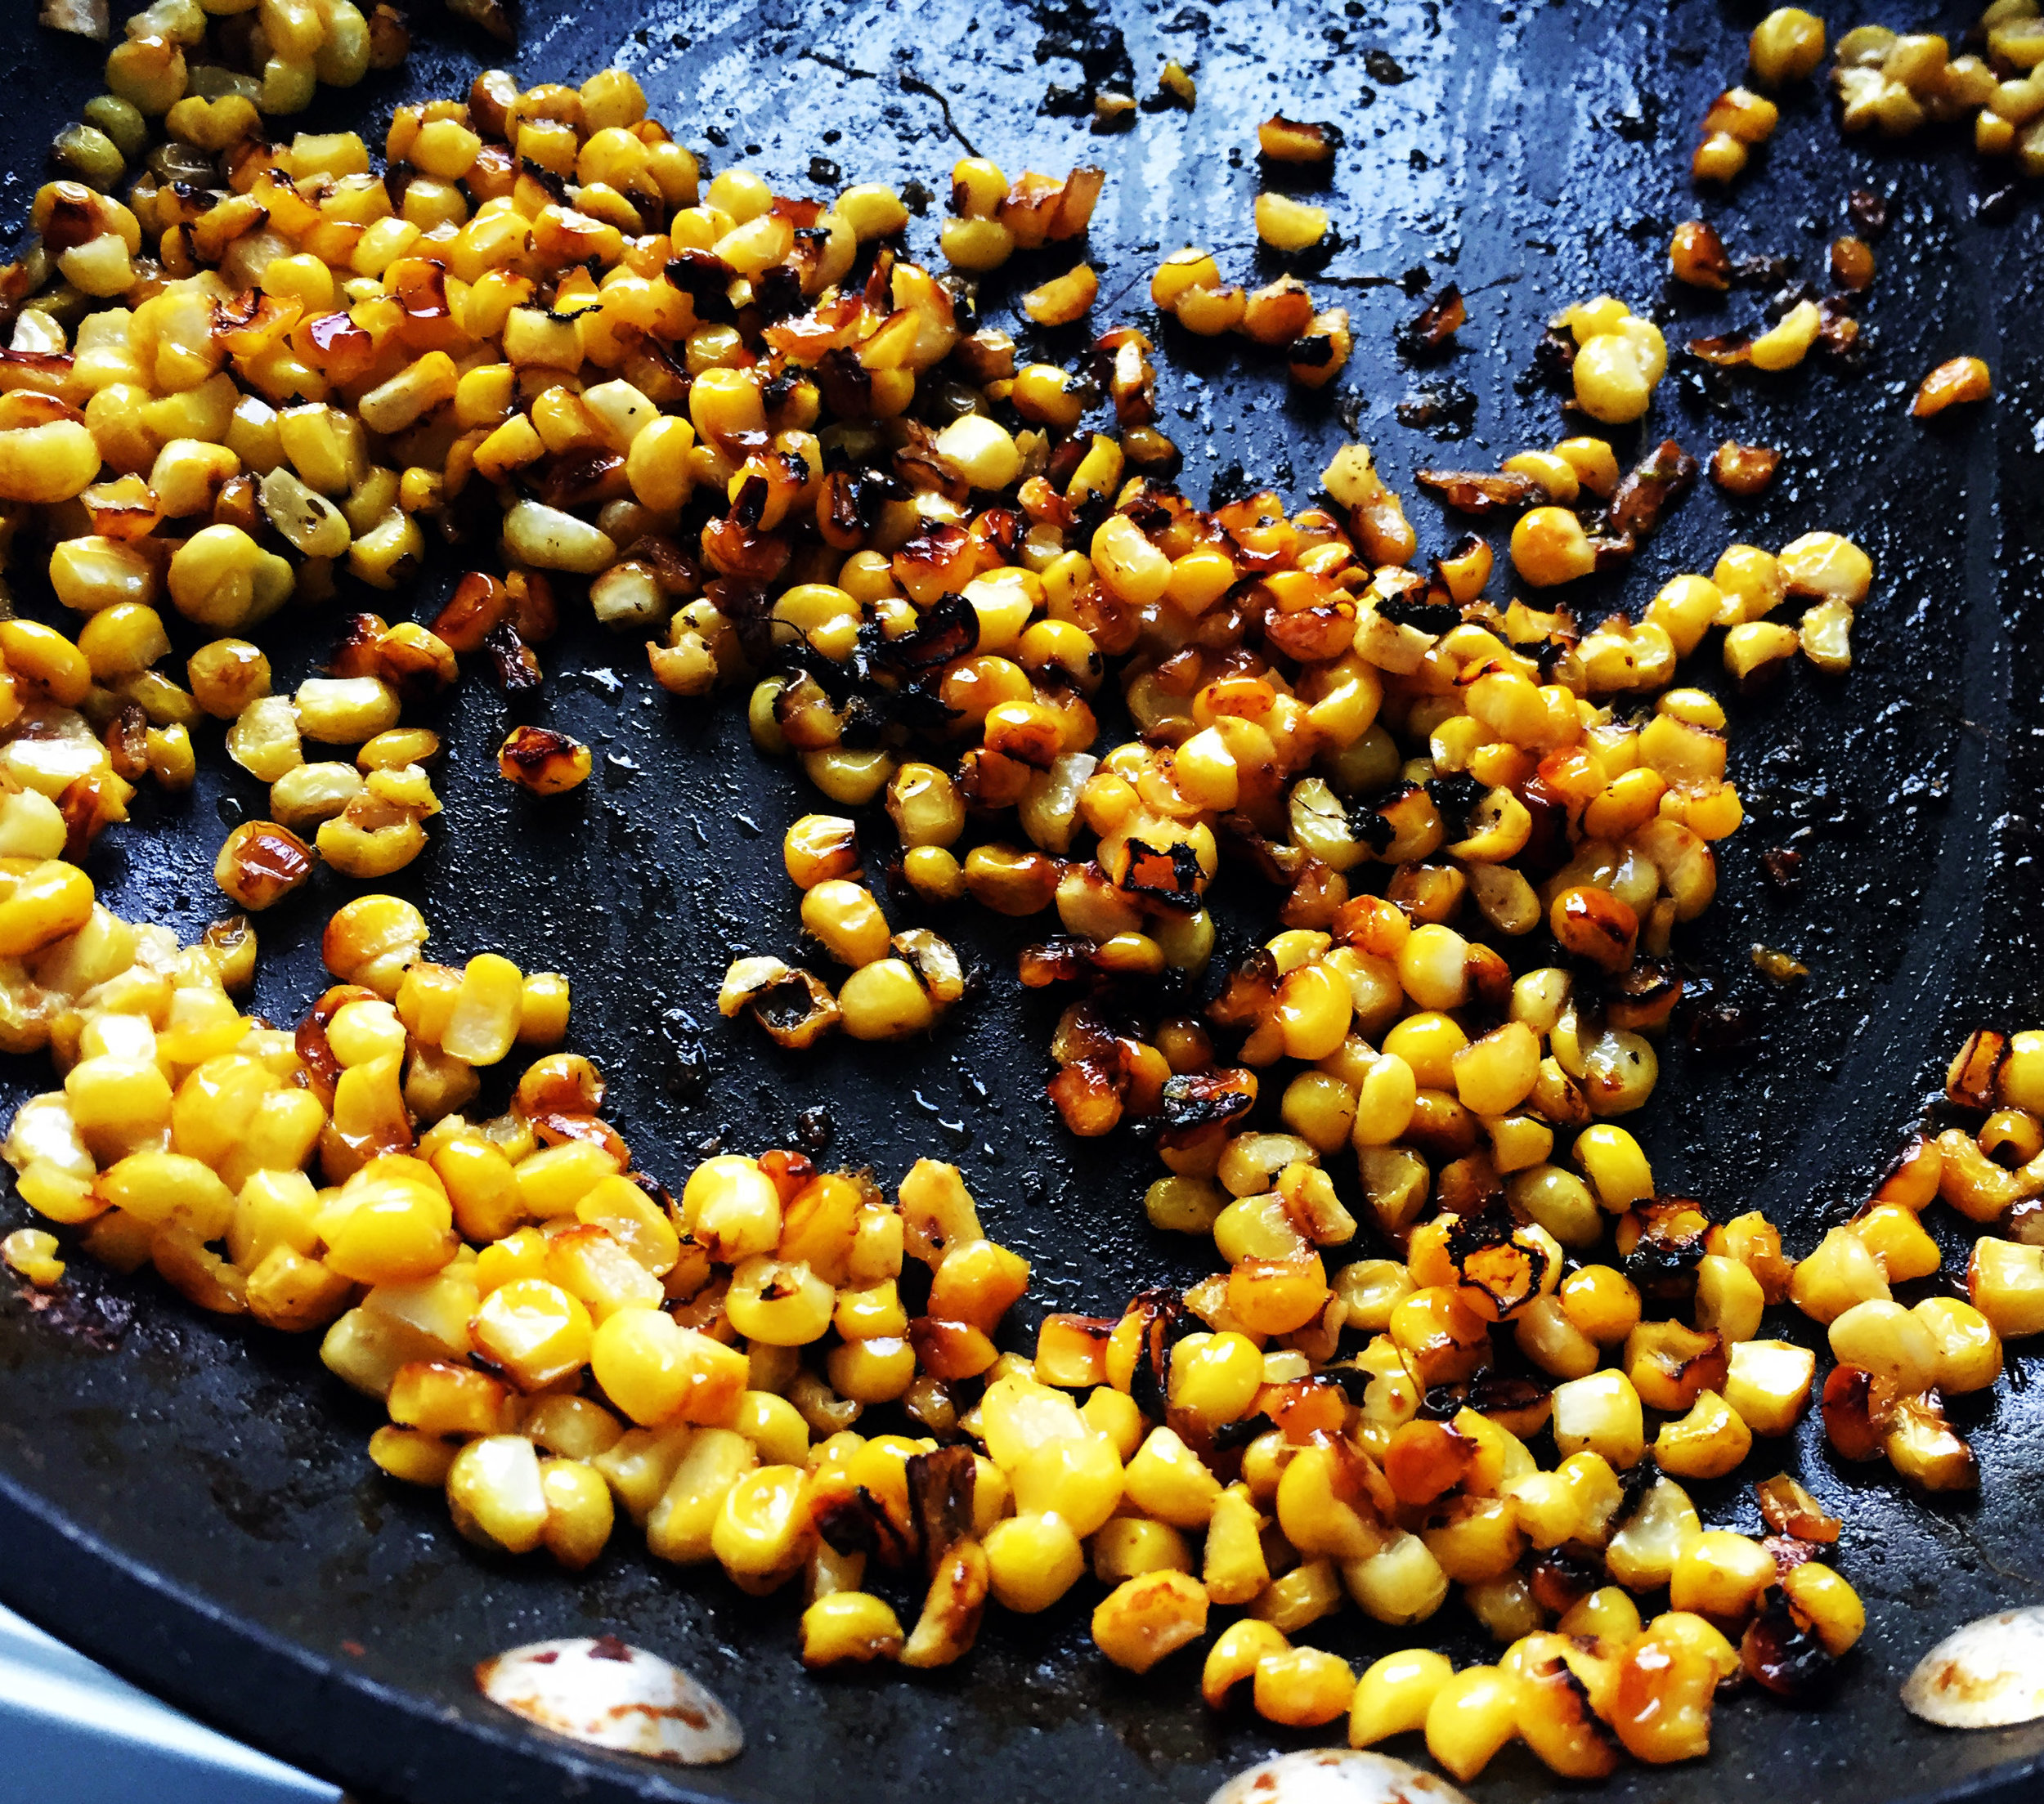 6. In another pan or same pan if the veggies are done, mix the corn, lime, and butter together and saute over medium heat for 8 minutes until it starts to brown.